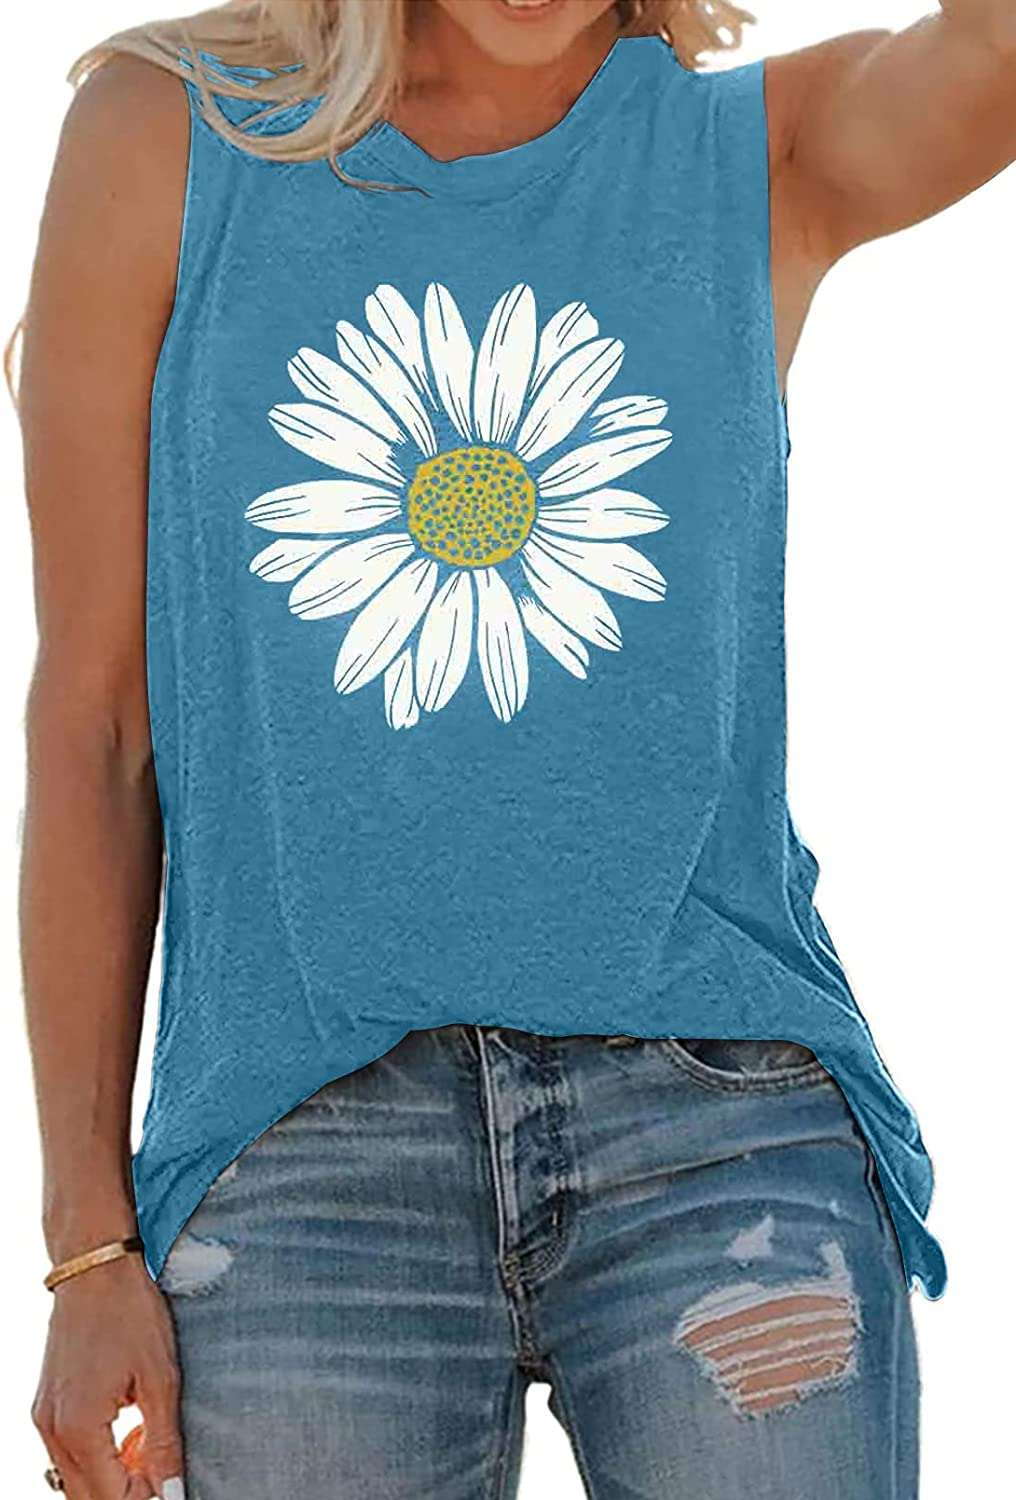 Asvivid Graphic Tank Tops for Womens Summer Casual Loose Sleeveless Shirts Dandelion Letter Printed Round Neck Tees